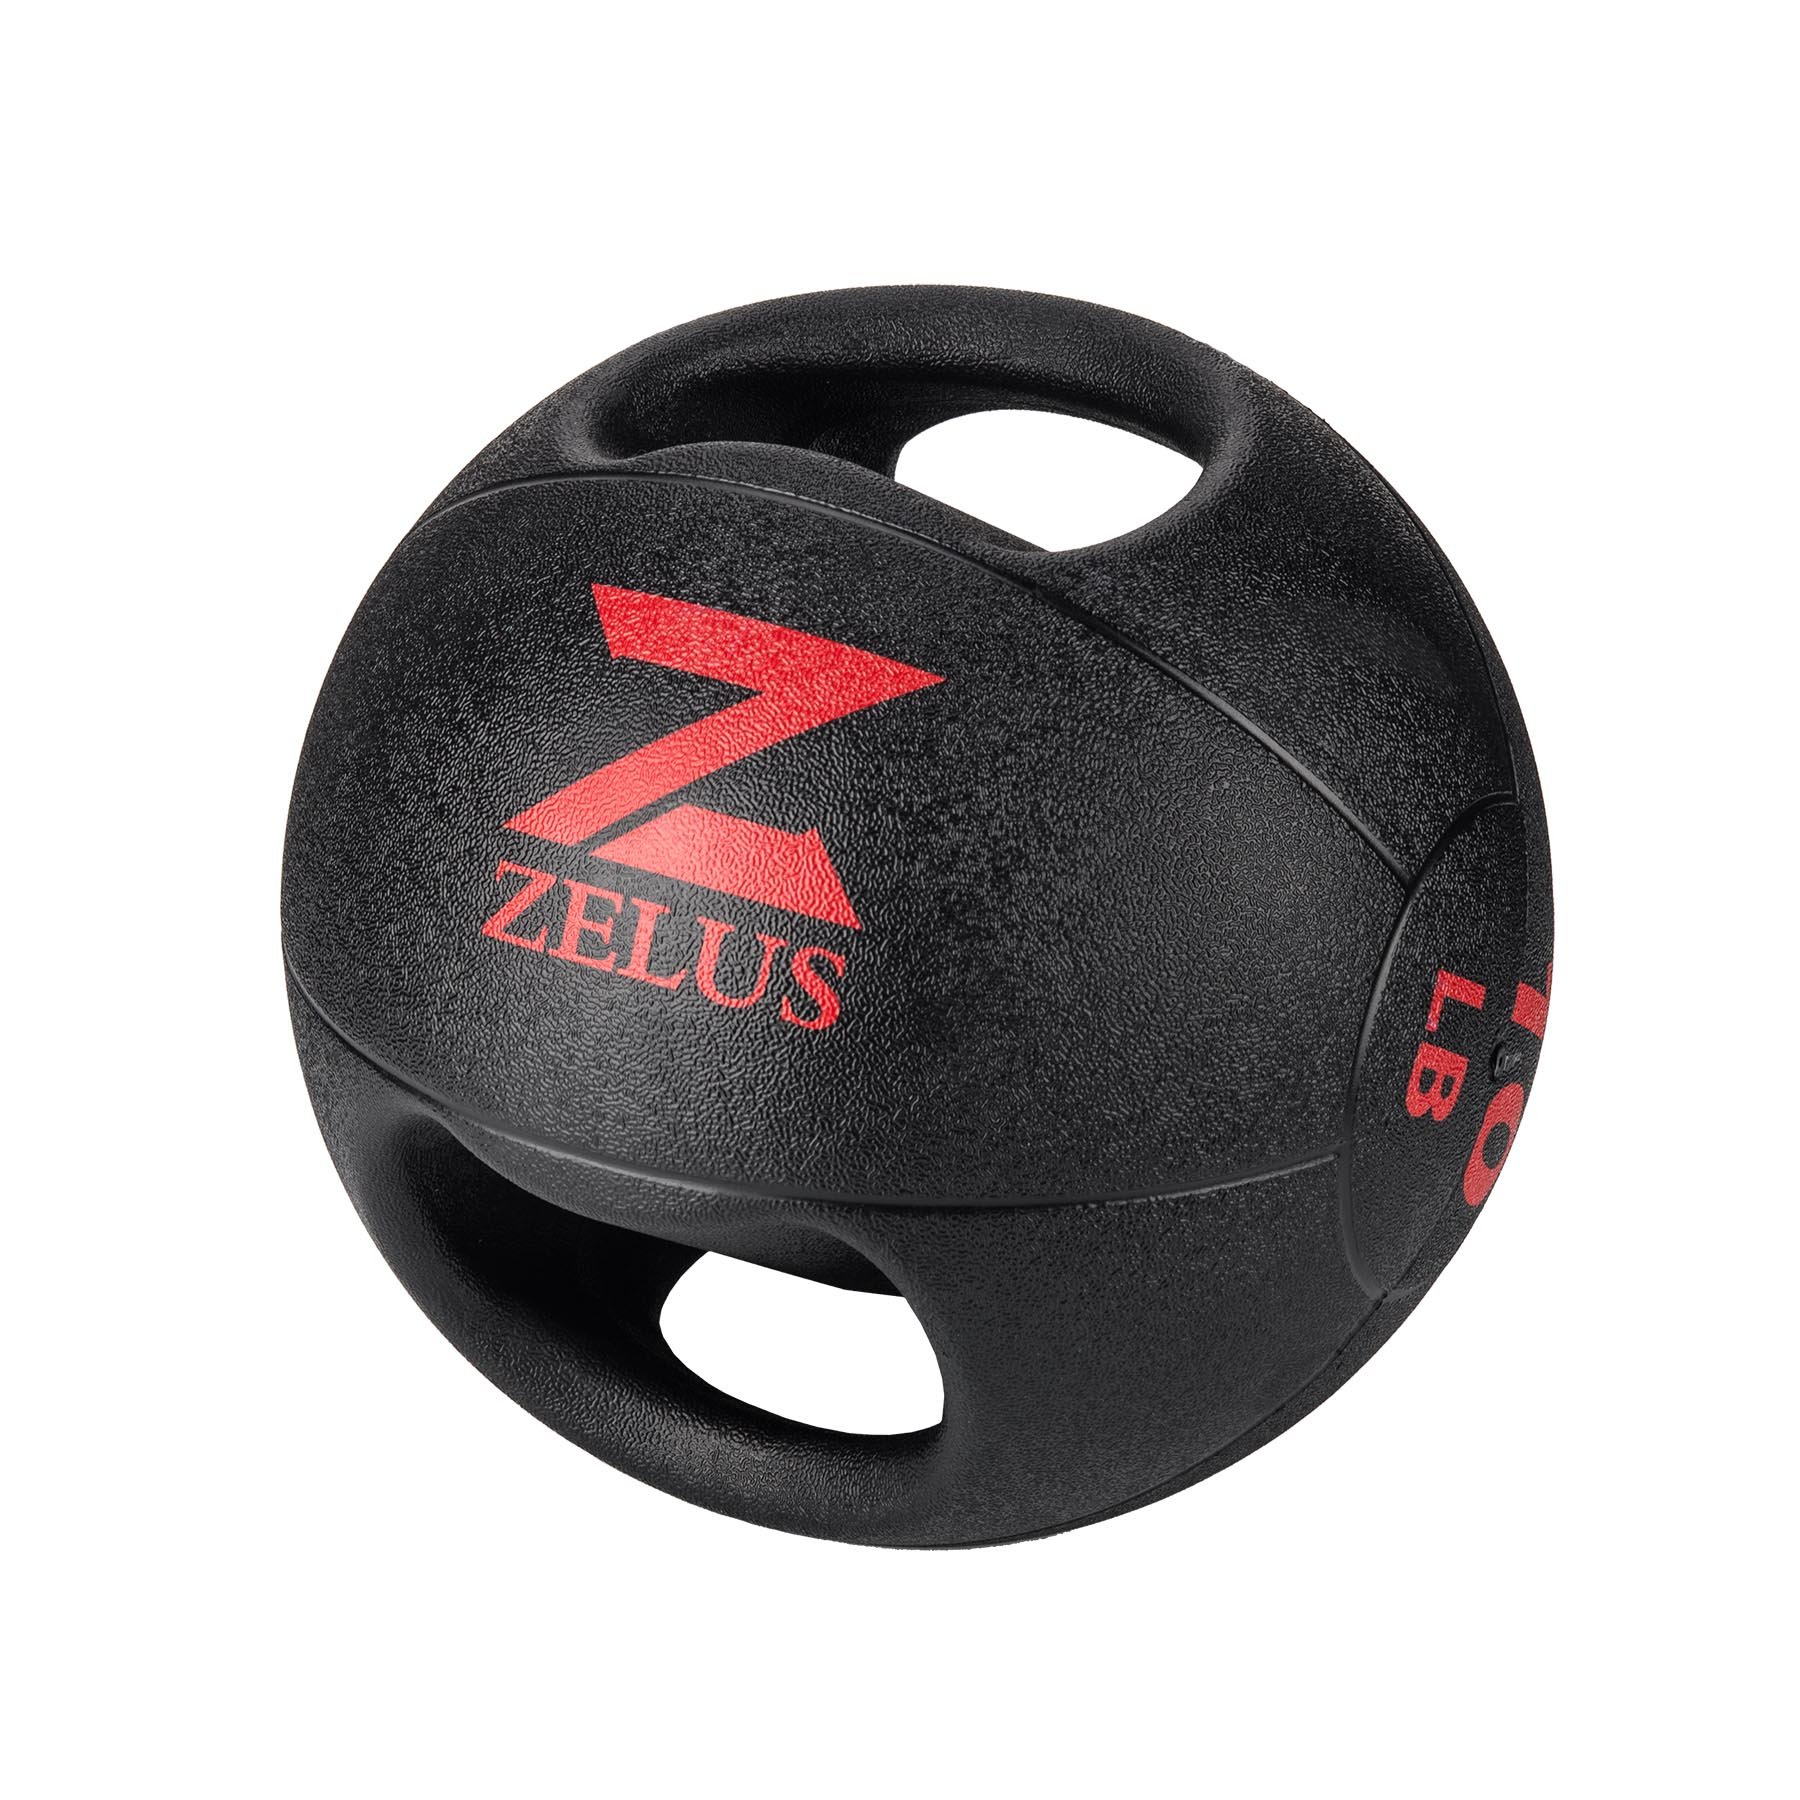 ZELUS Dual Grip Medicine Ball Weight Exercise Ball with Durable Rubber and Textured Grip for Strength Balance Training - Weight Sizes 10/20 lbs. Available (10.0 Pounds)